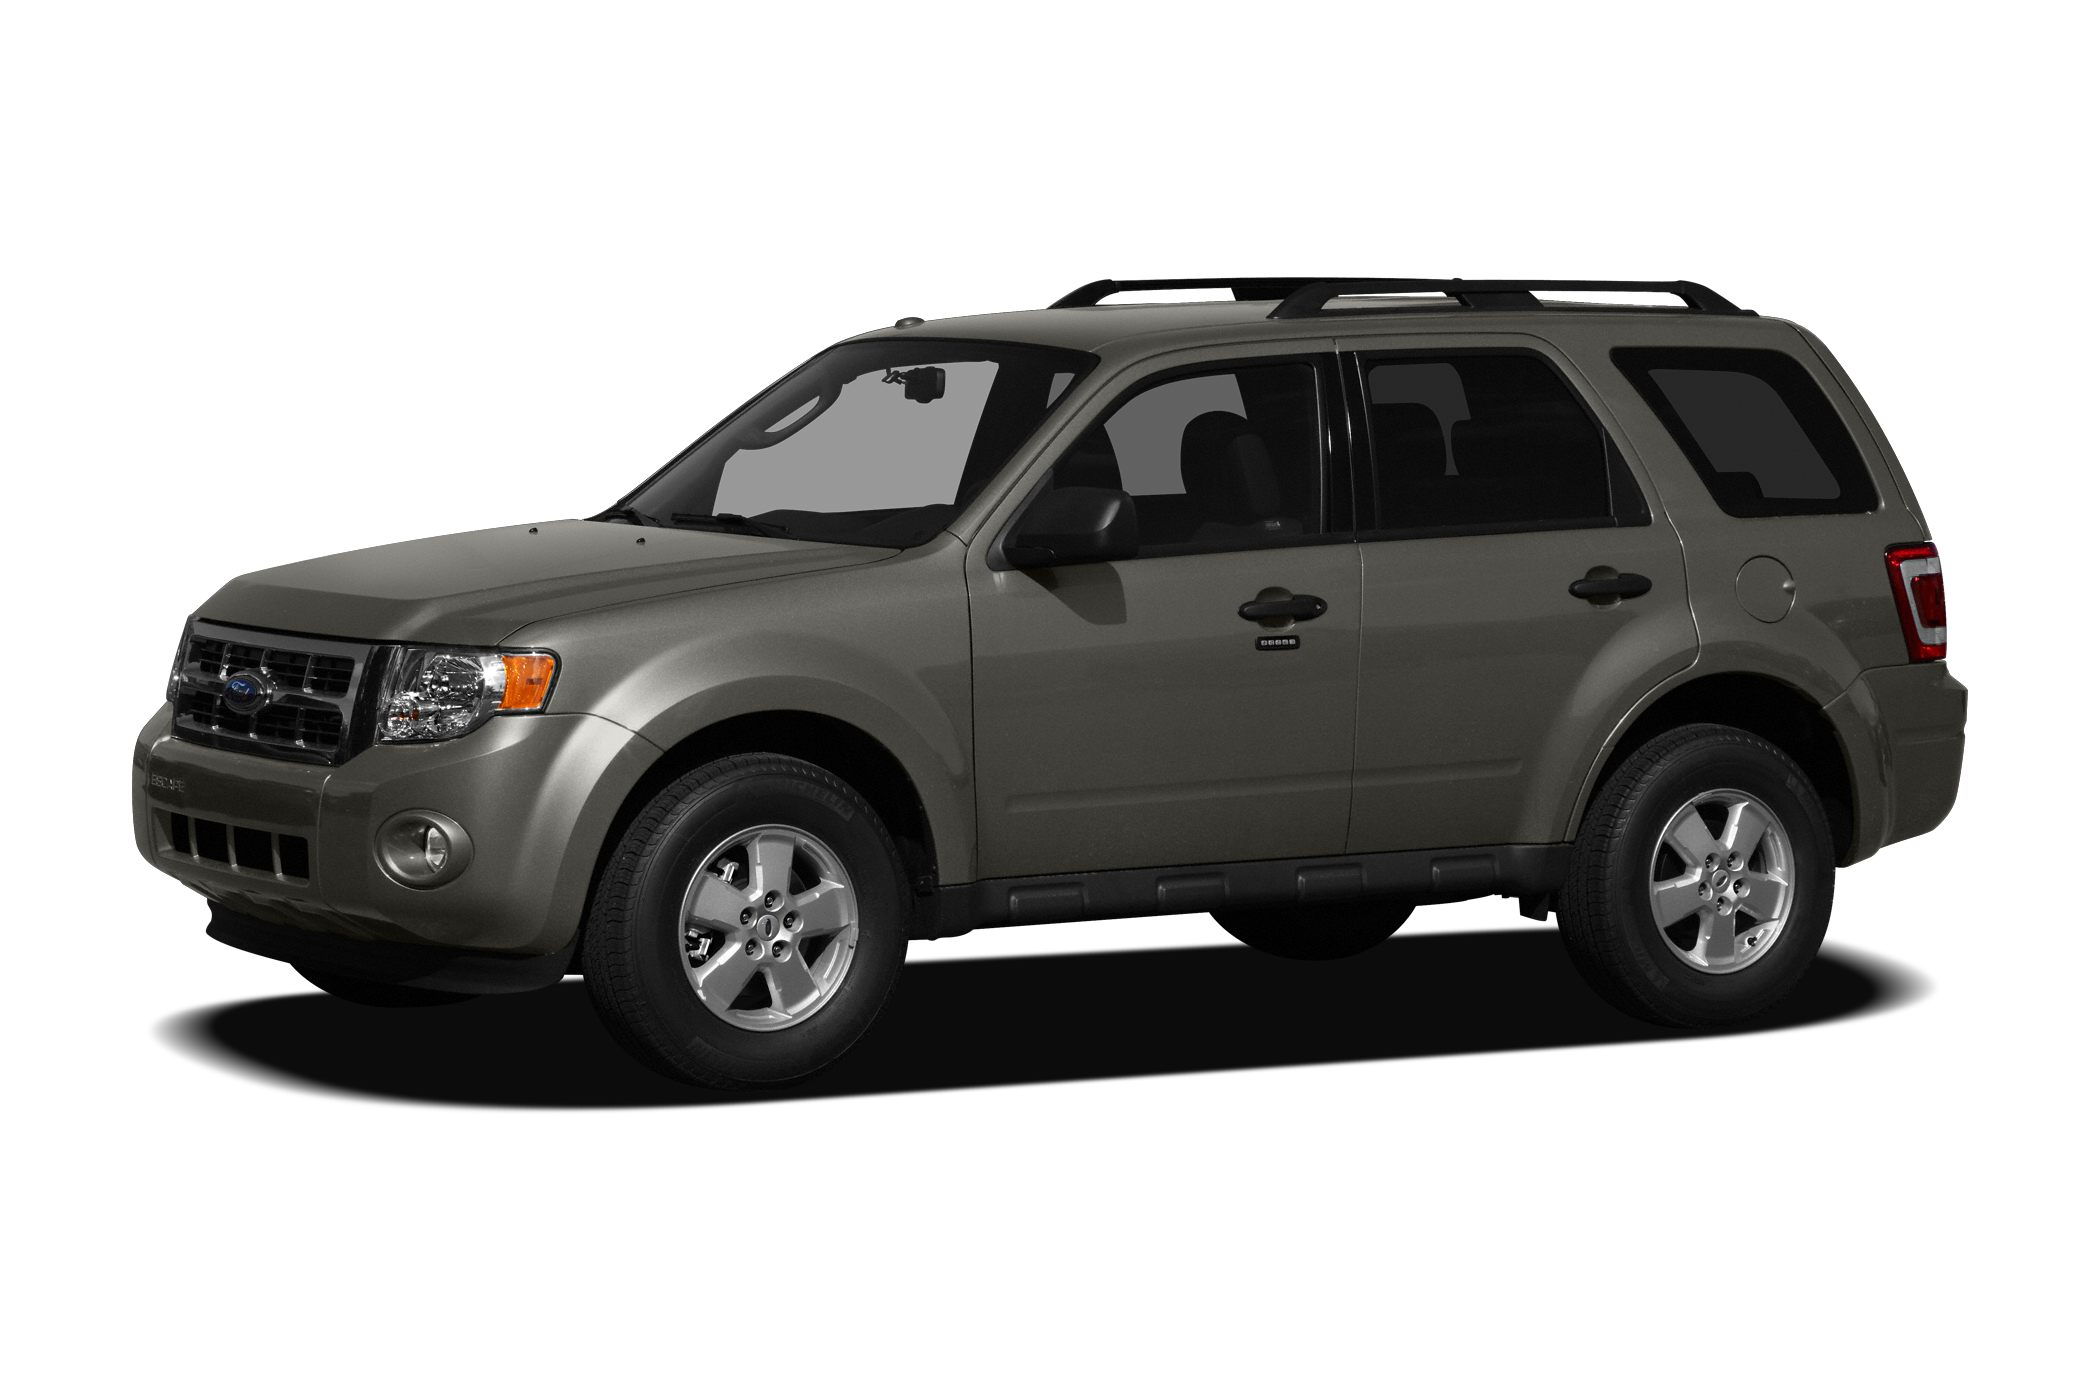 2010 Ford Escape XLT SUV for sale in Santa Maria for $14,999 with 32,275 miles